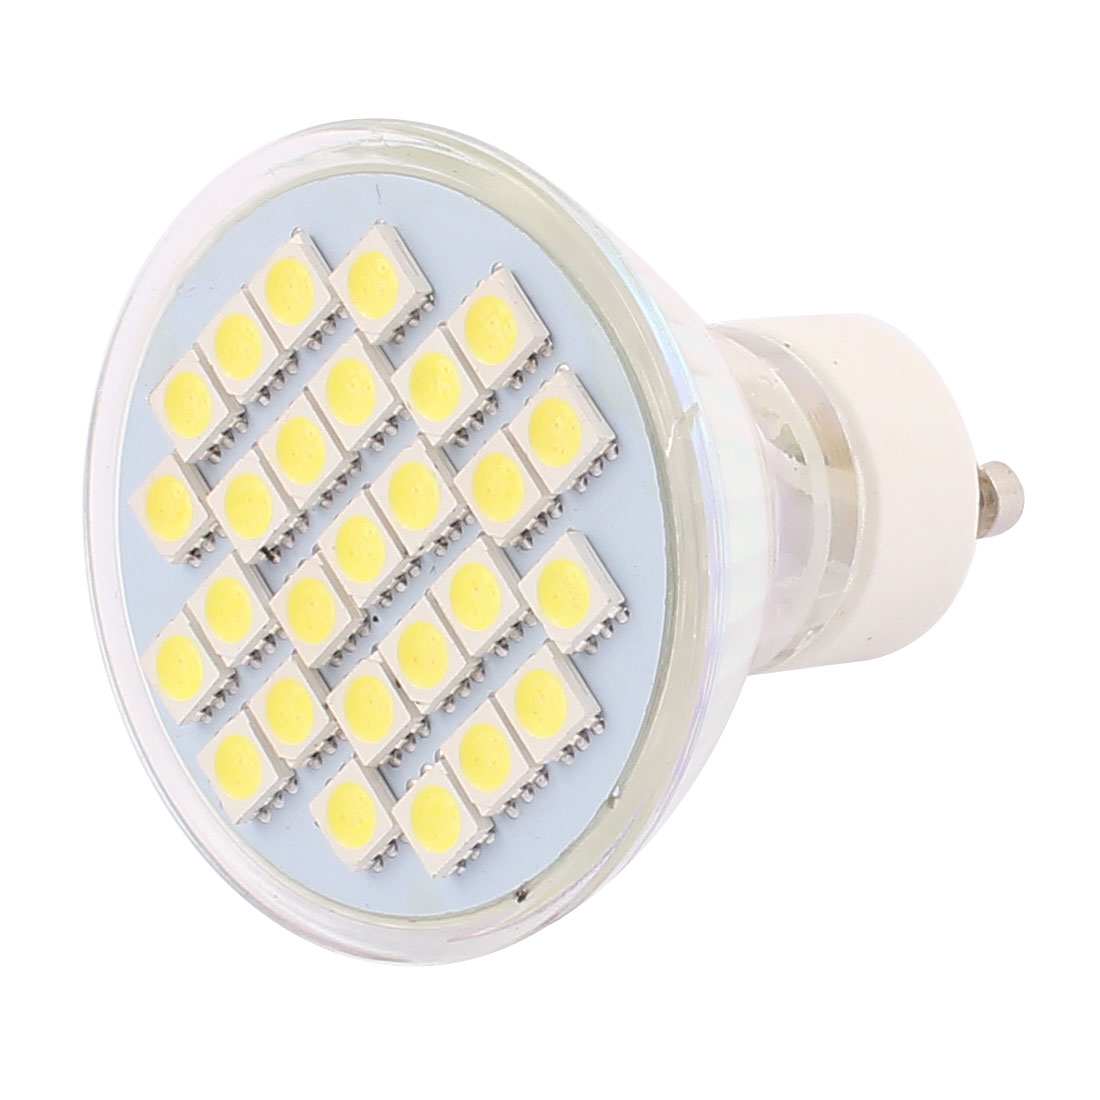 GU10 SMD5050 27LEDs AC 220V 4W Glass Energy Saving LED Lamp Bulb White